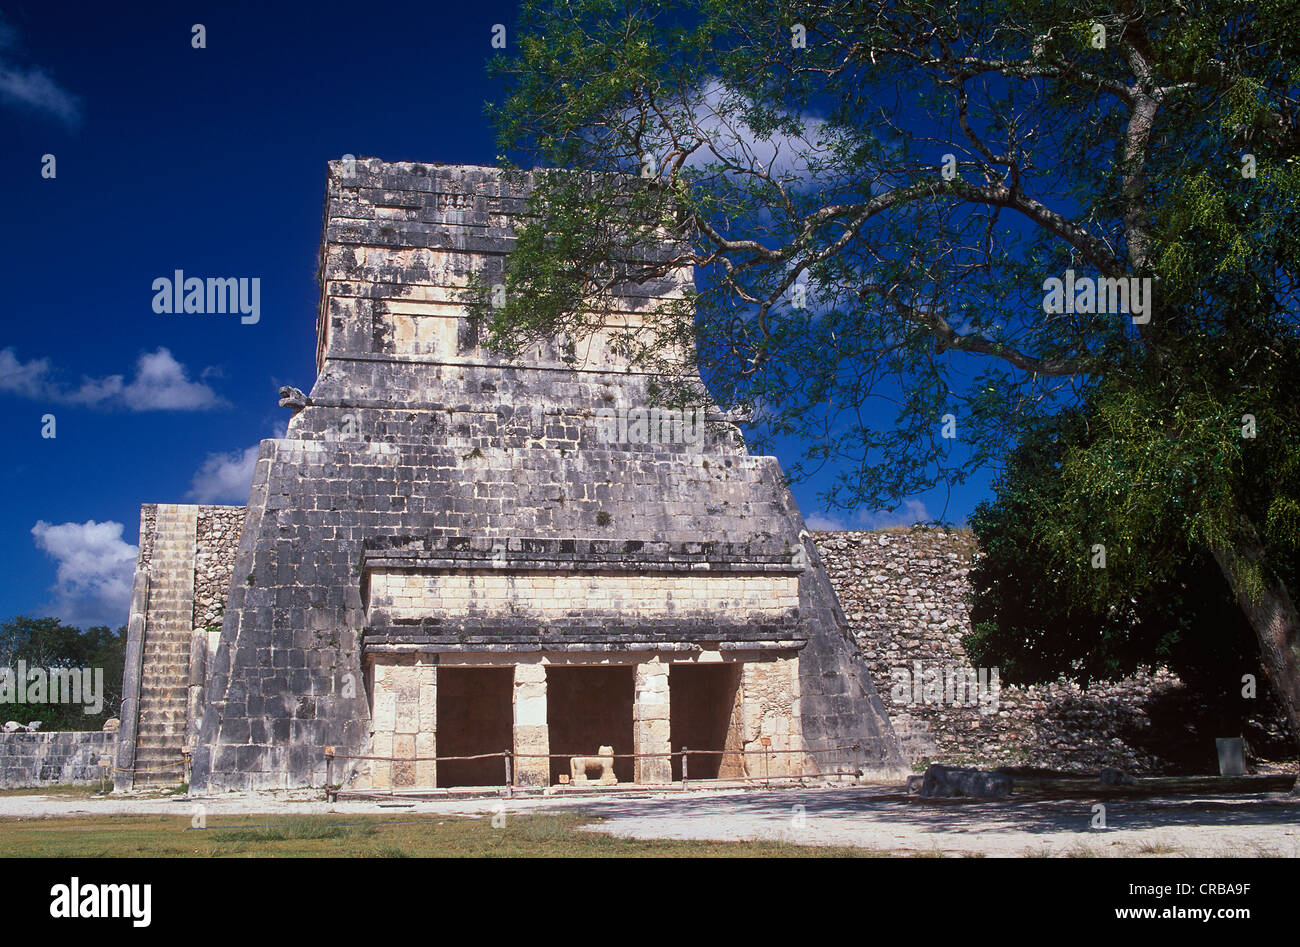 Temple of the Jaguars, Mayan ruins of Chichen Itza, Yucatan, Mexico, North America - Stock Image